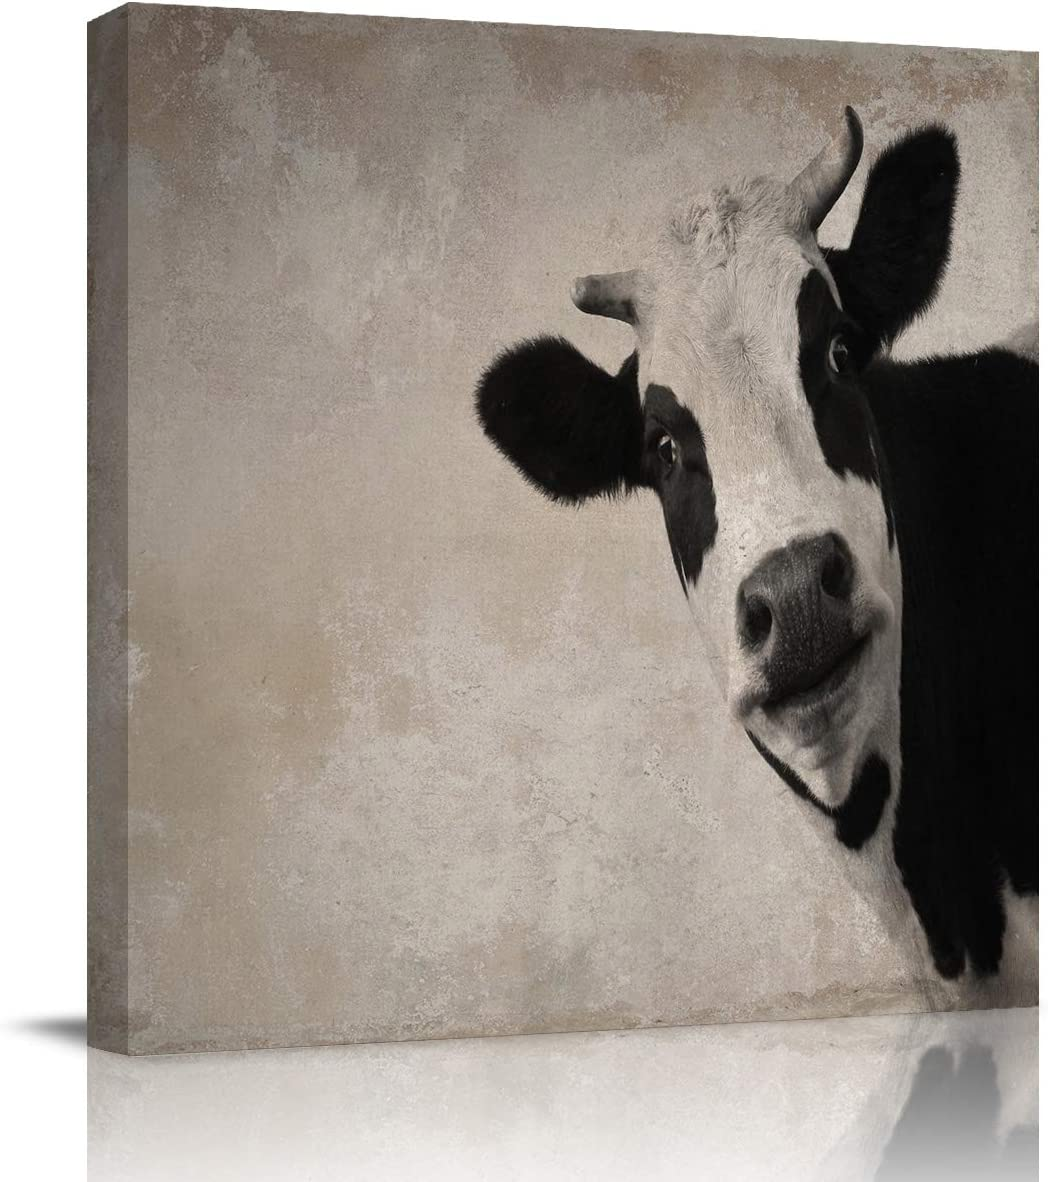 Canvas Painting Wall Decor-Rustic Vintage Farm Cow Black White,Wall Art Print Paintings for Home/Living Room/Bedroom Decor Single Panel 12x12Inches